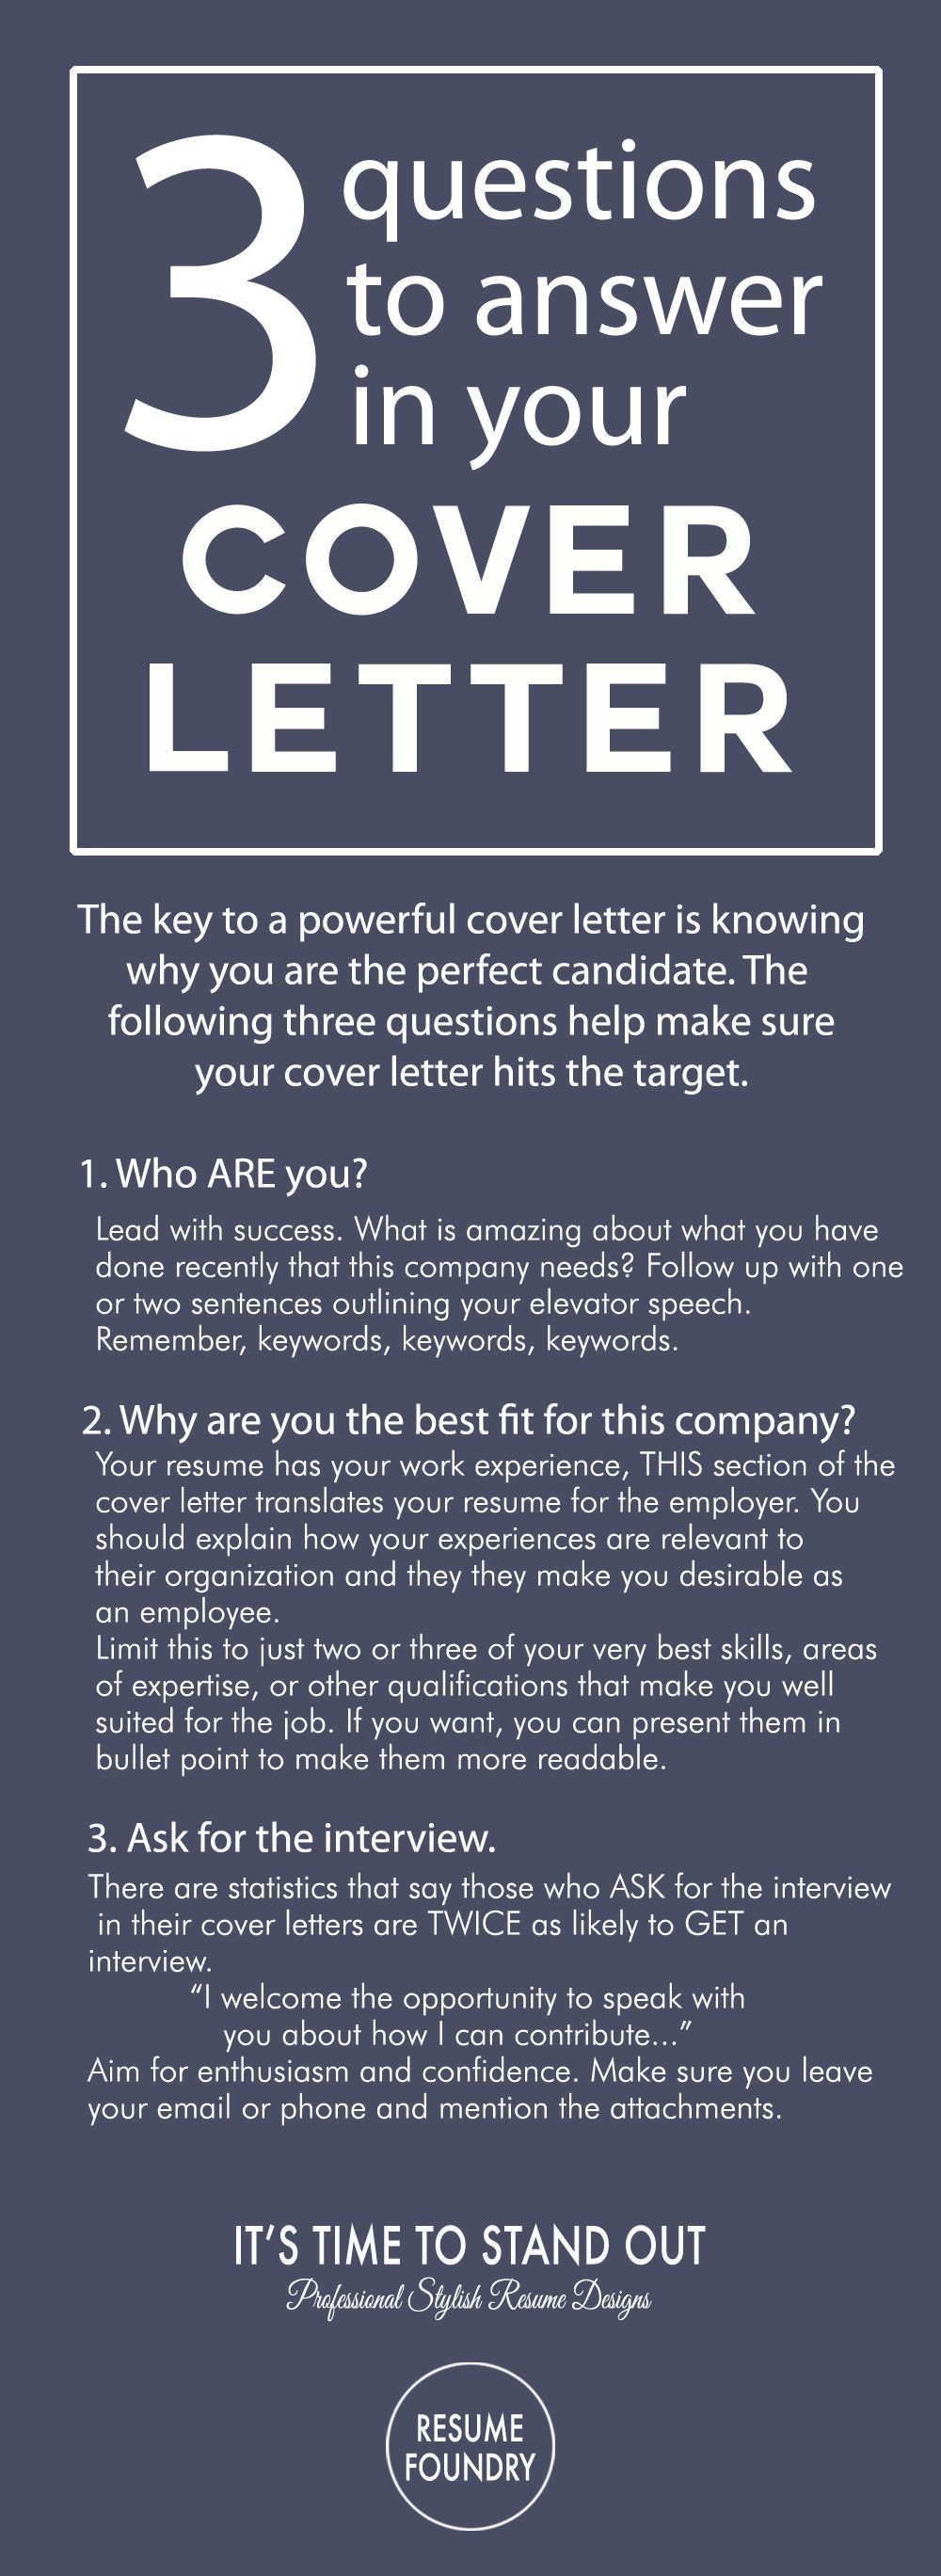 "Cover Letter Tips - Outline.&nbsp;<a href=""https://storage.googleapis.com/guttercleaning/Gutter-Cleaning-Houston-5572.html"">useful link</a> How to write a cover letter."